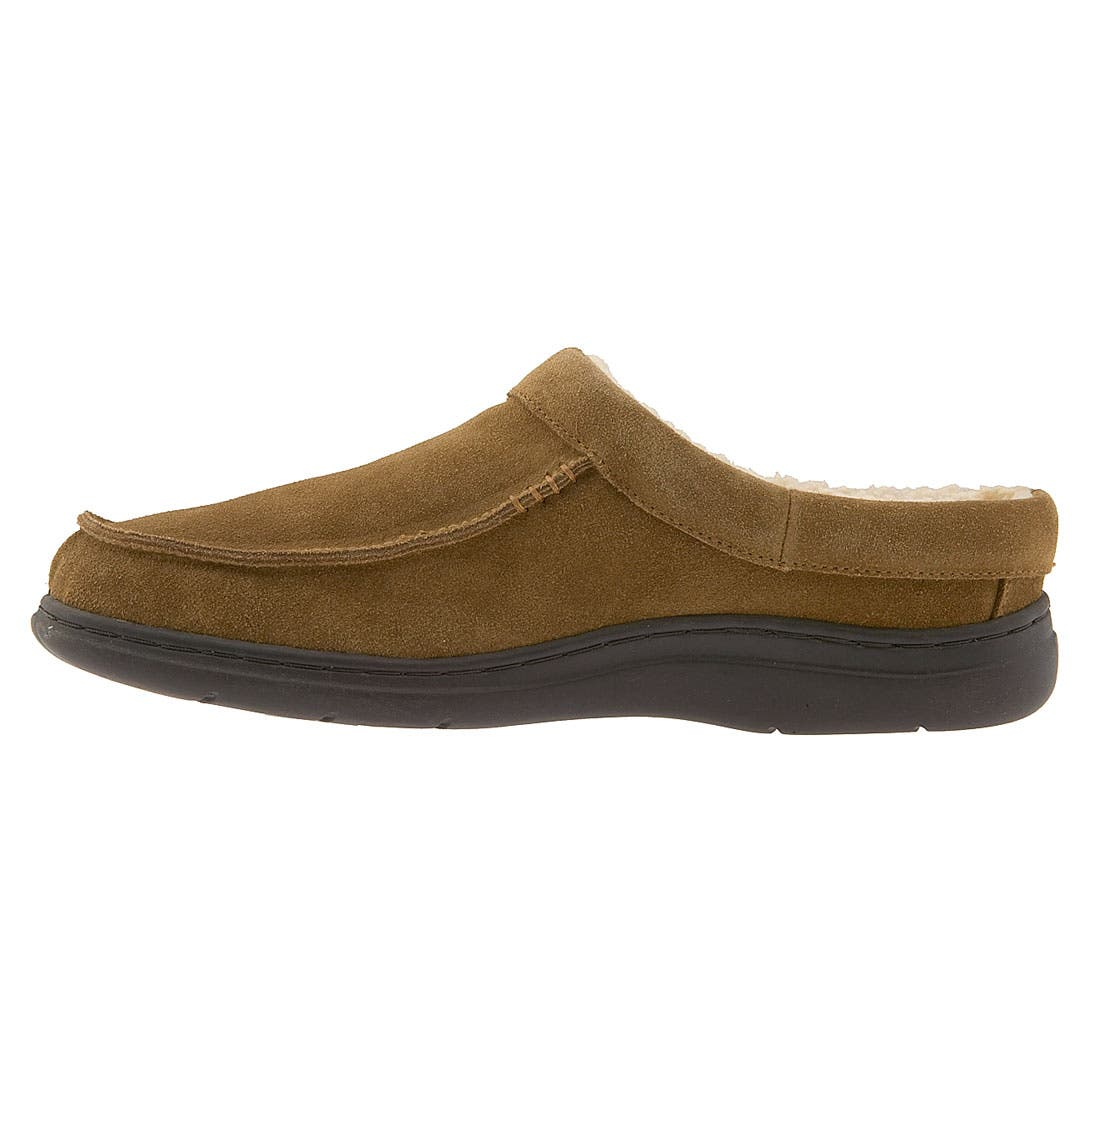 'Edmonton' Slipper,                             Alternate thumbnail 2, color,                             TAN